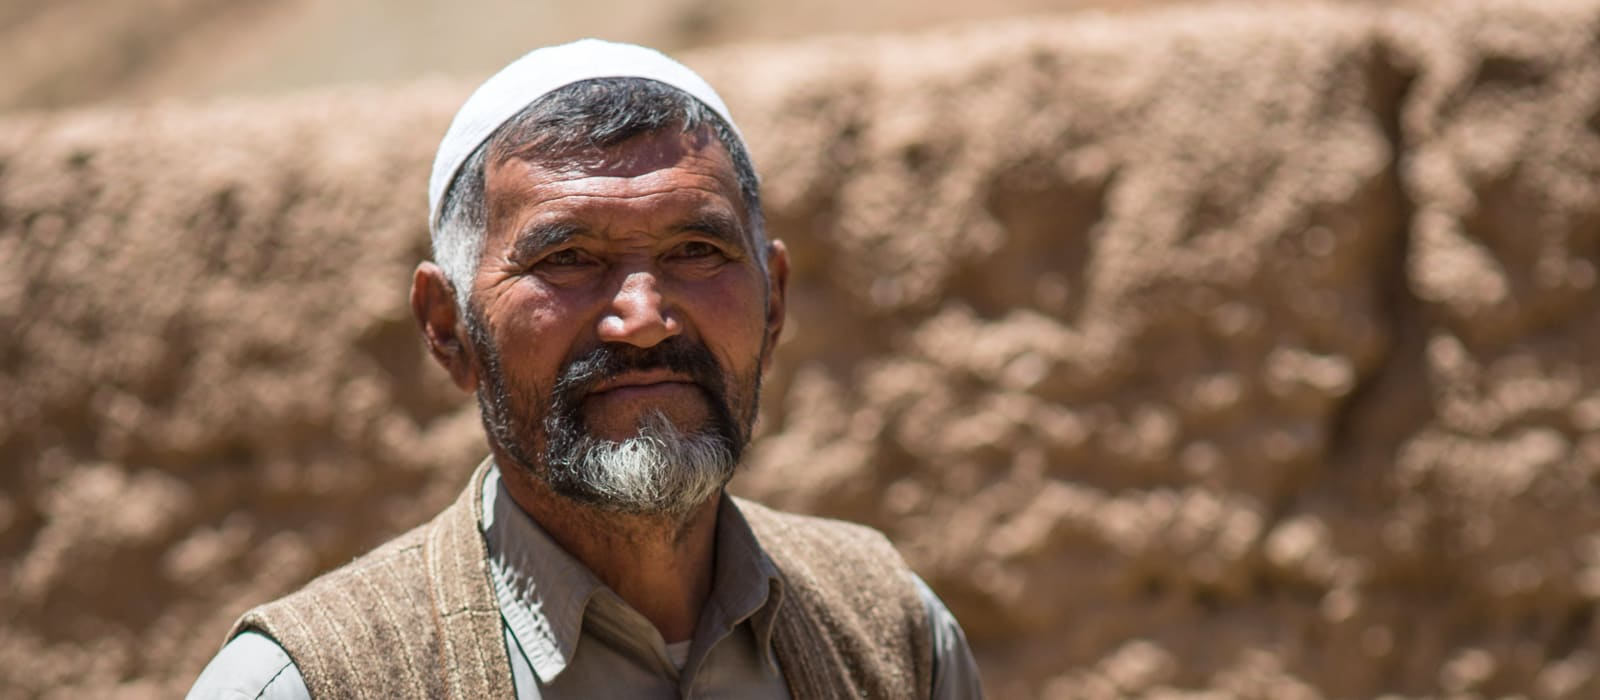 Afghanaid responds to severe drought in Afghanistan